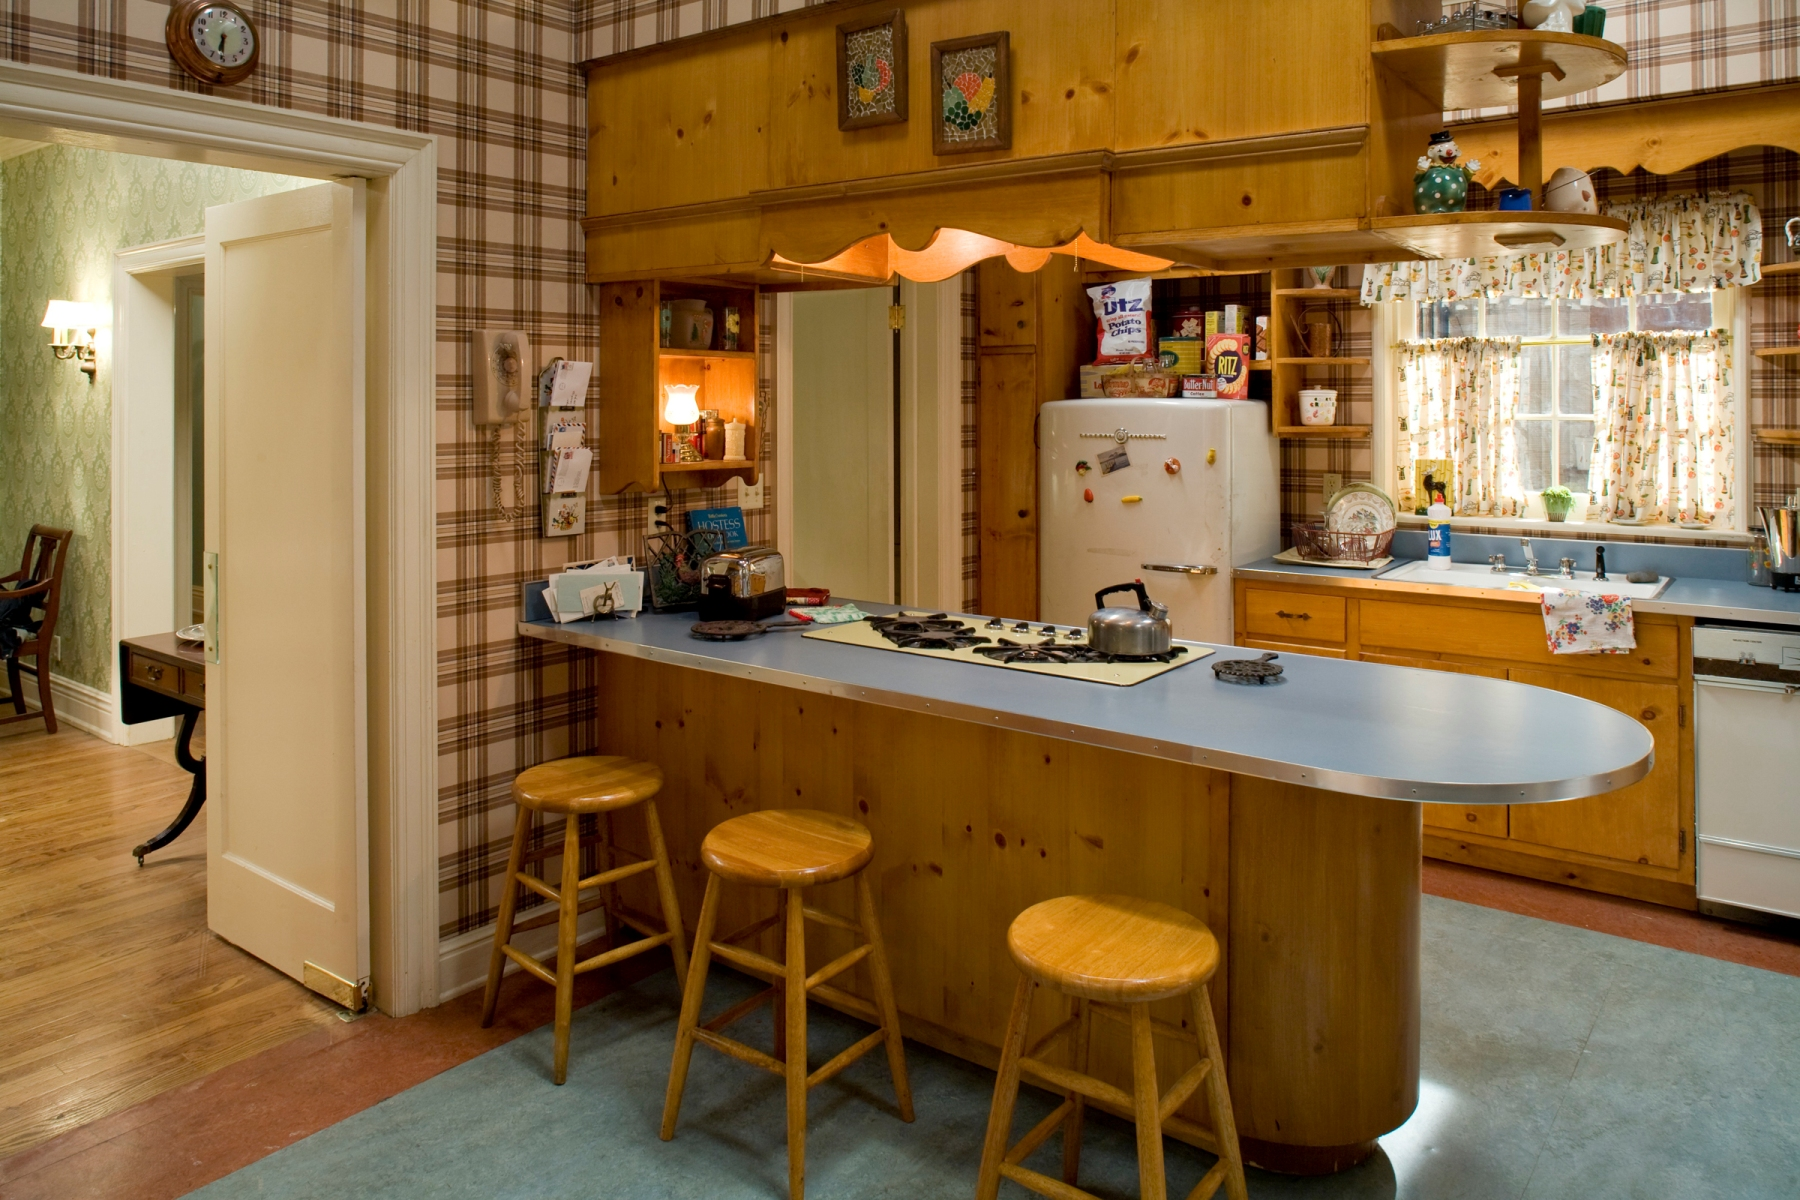 The Draper kitchen, one of the rooms carefully recreated in the museum's exhibition. Credit: Carin Baer/AMC